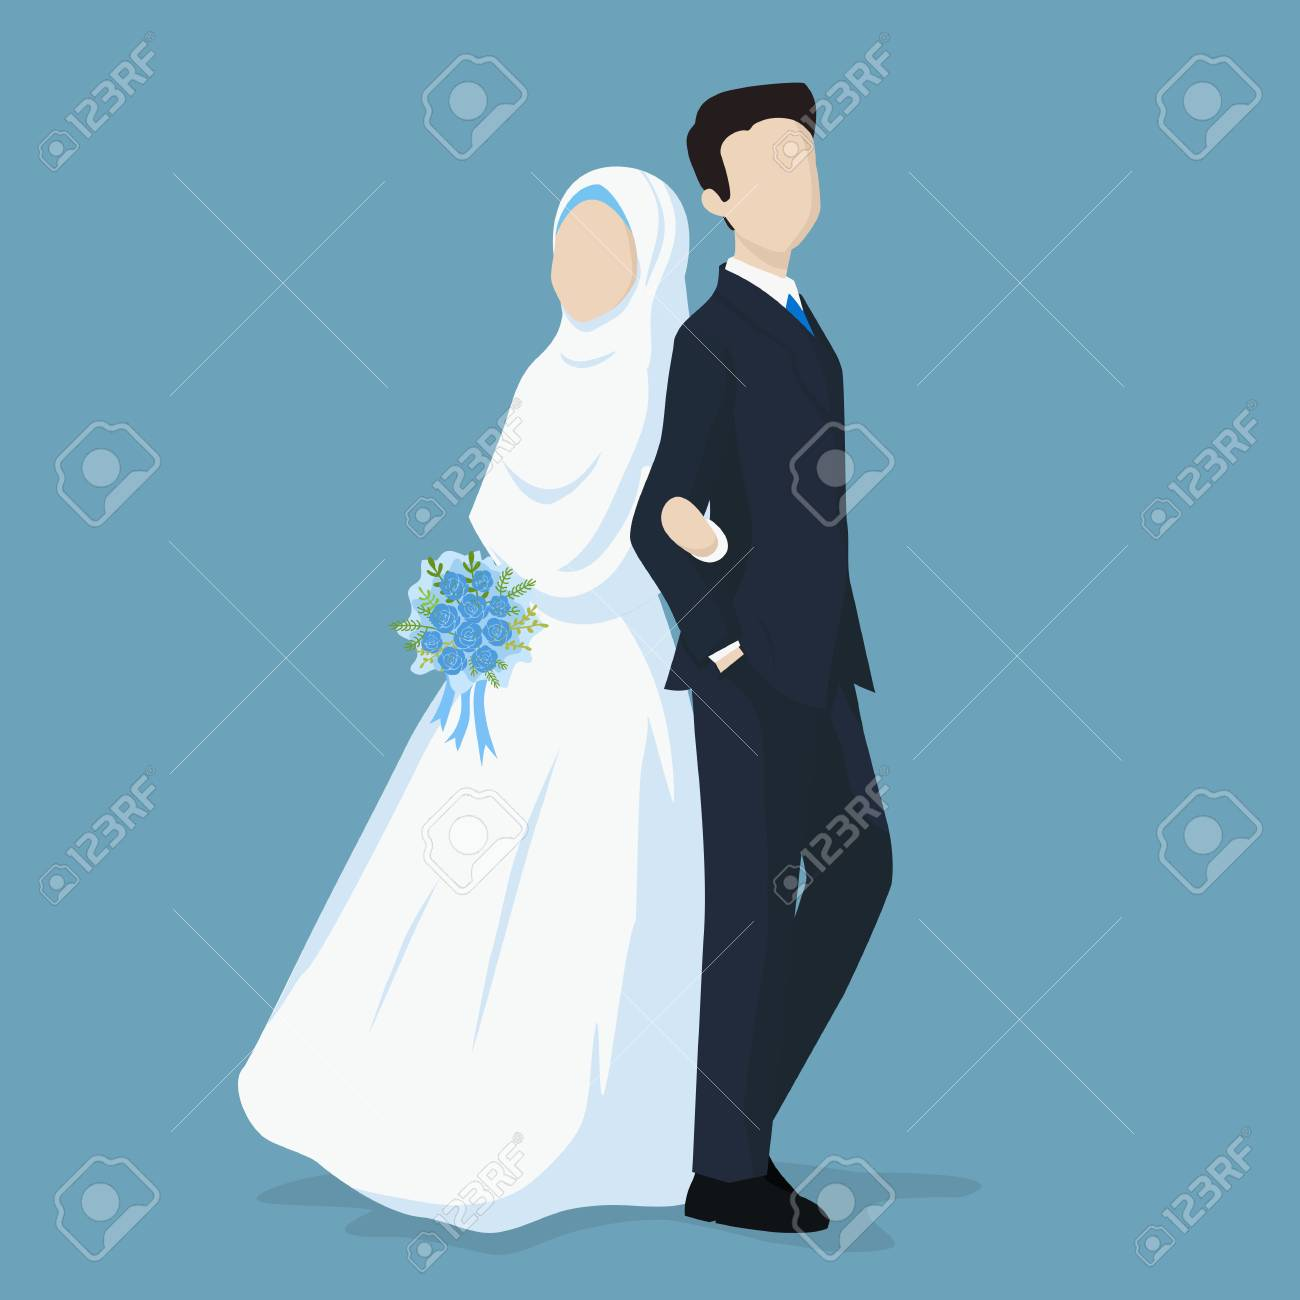 Muslim Bride And Groom Vector Cartoon Illustration